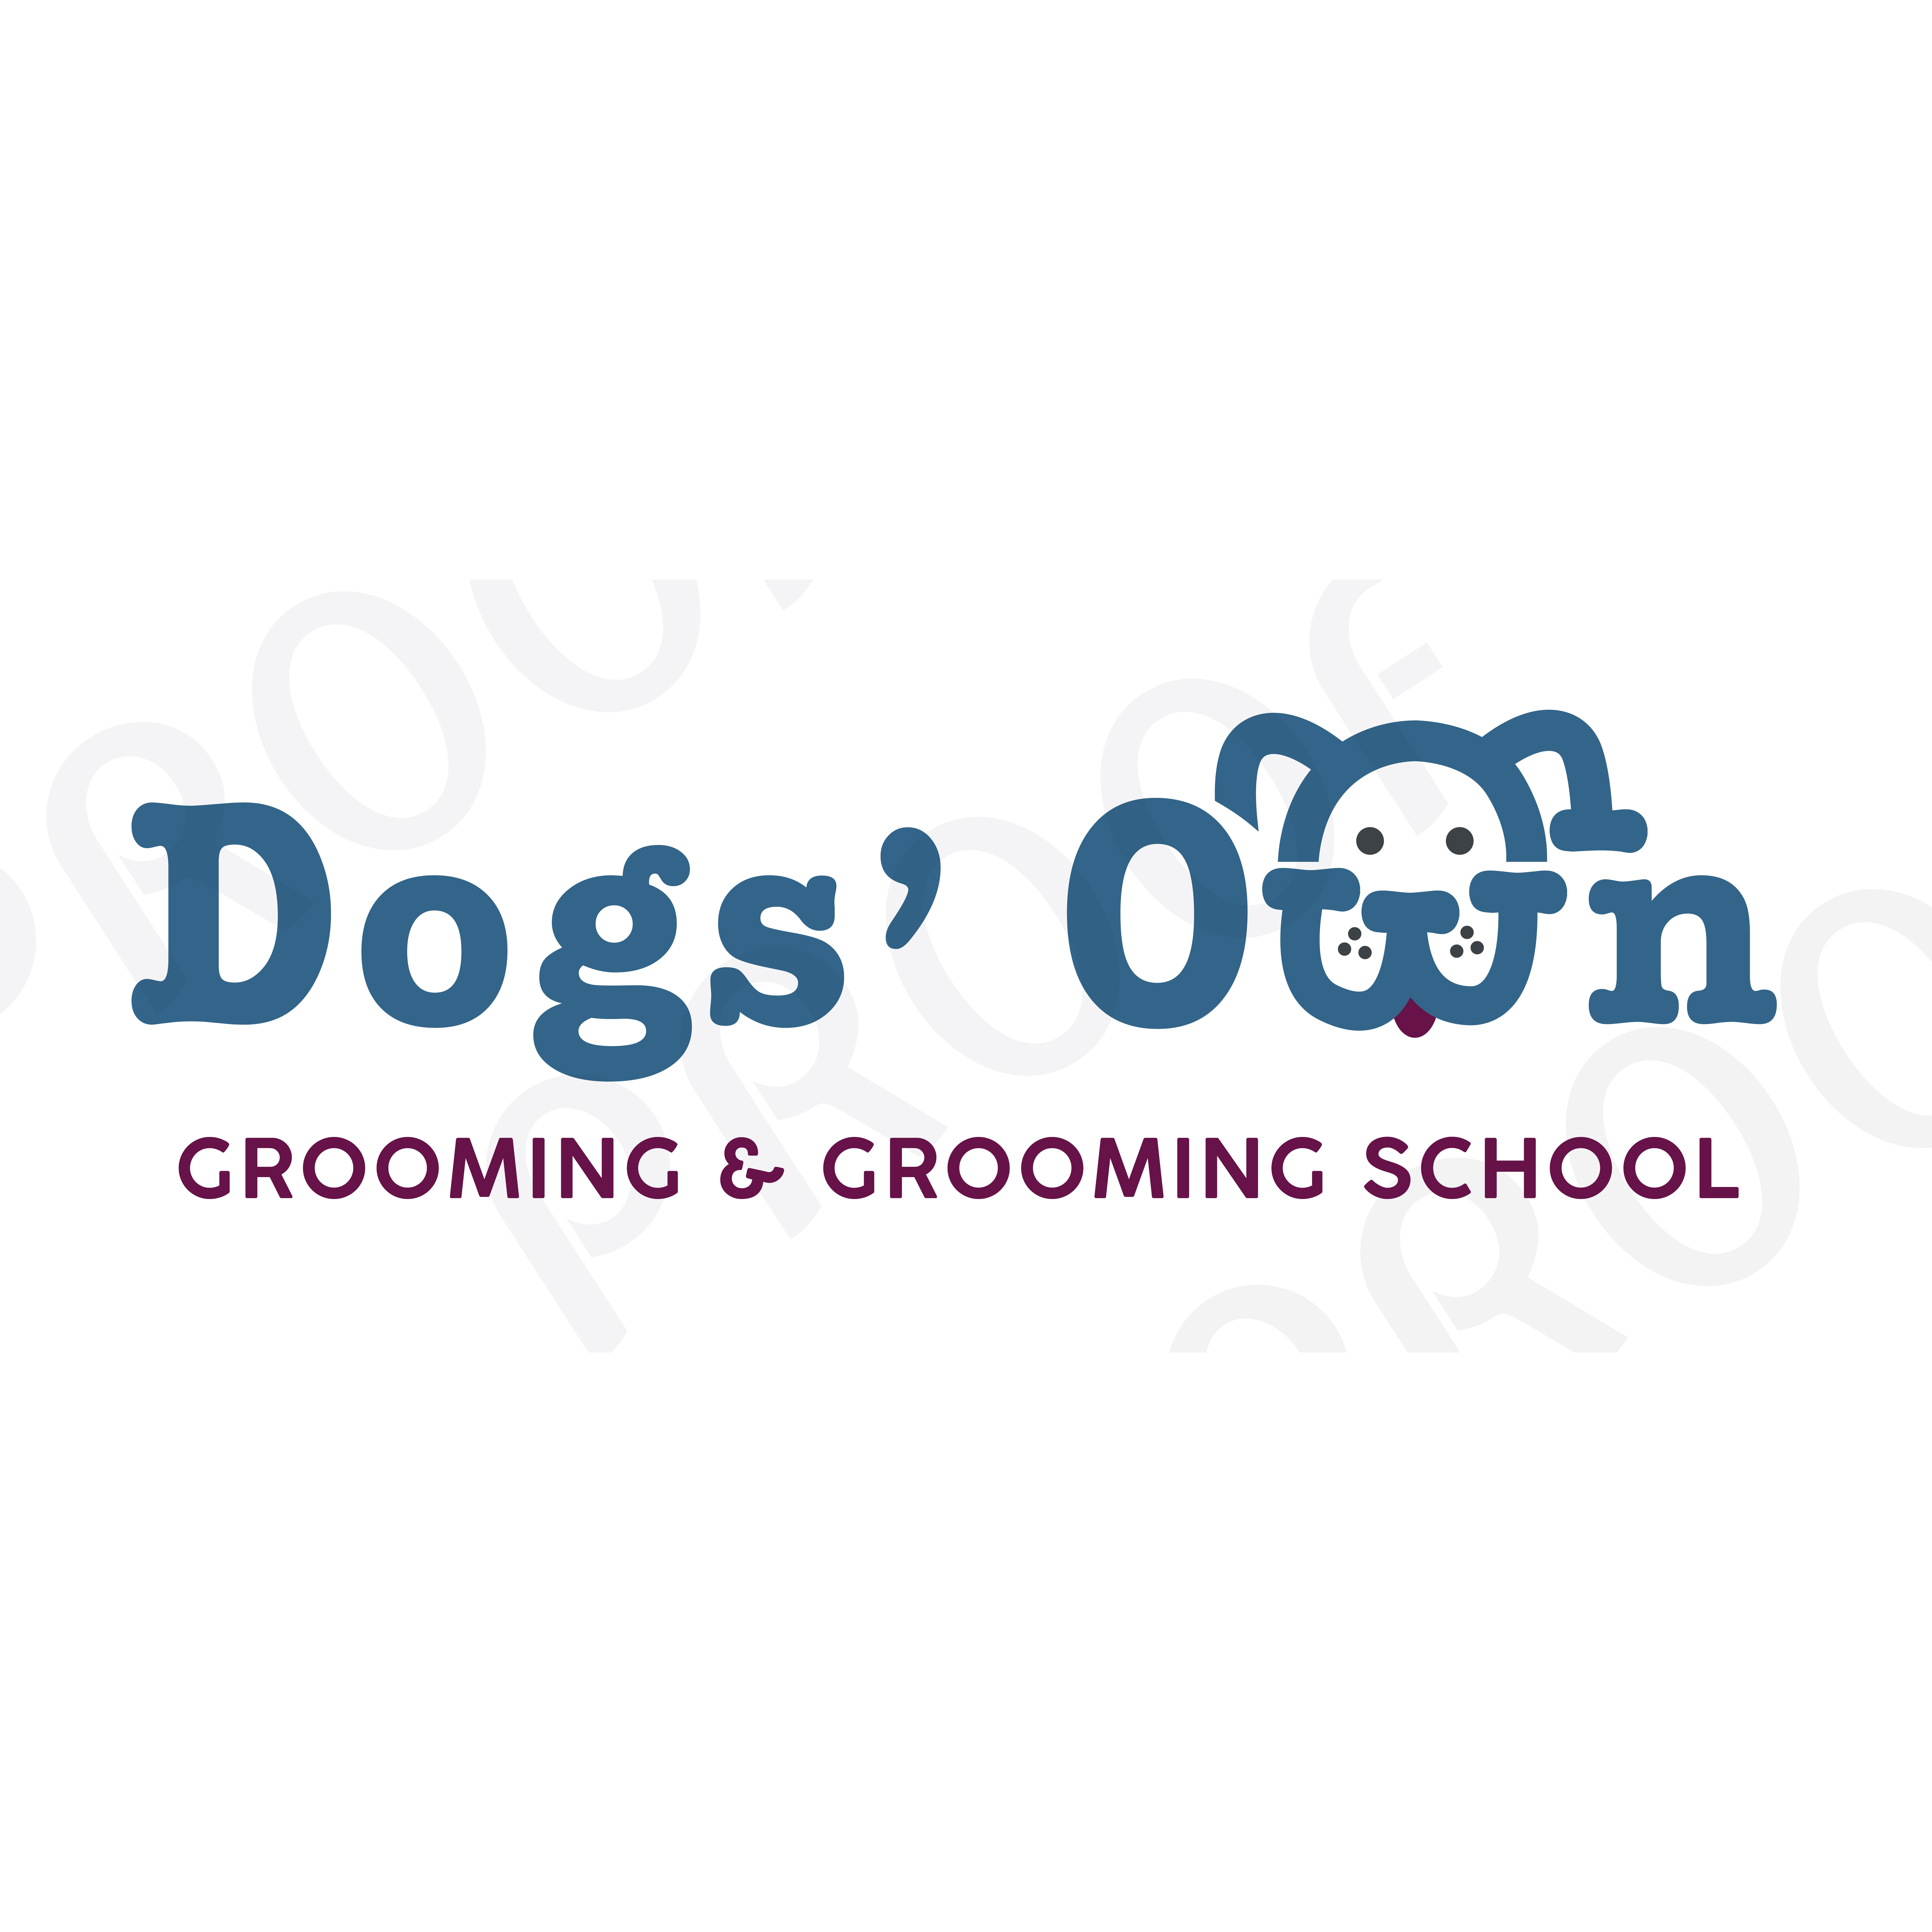 Dogs' Own Grooming and Grooming School